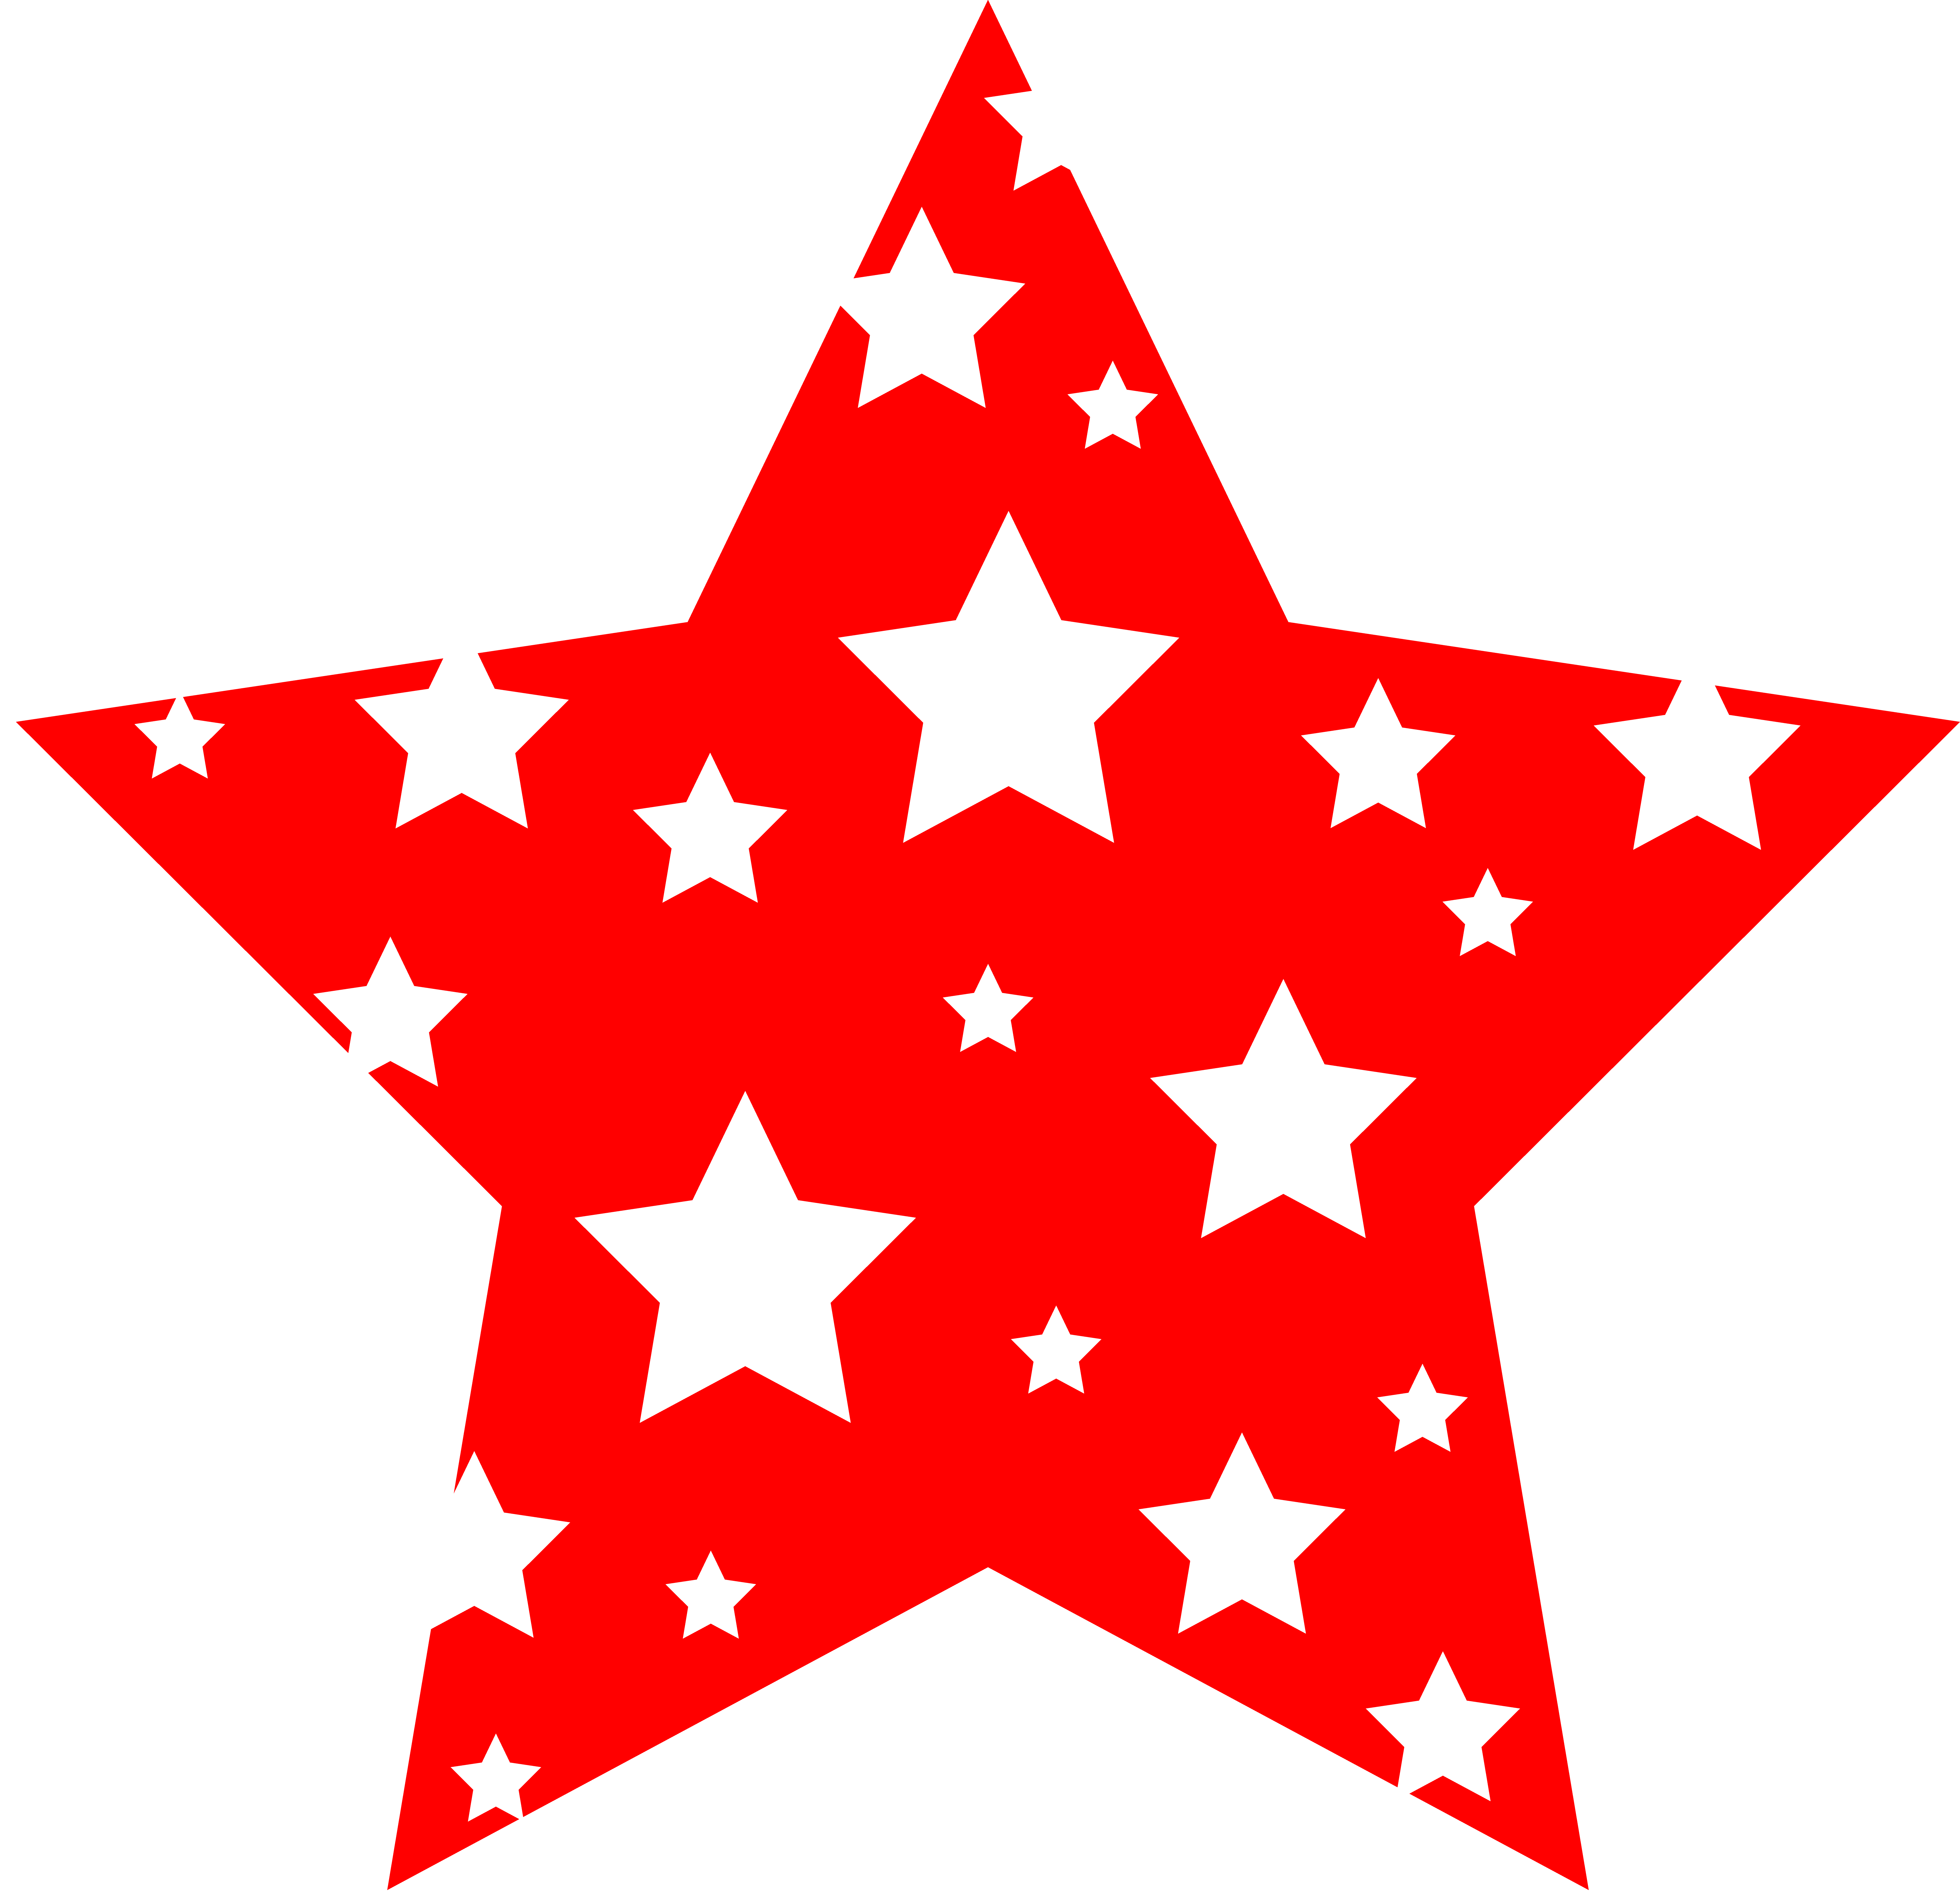 Stars Clipart Border | Clipart Panda - Free Clipart Images